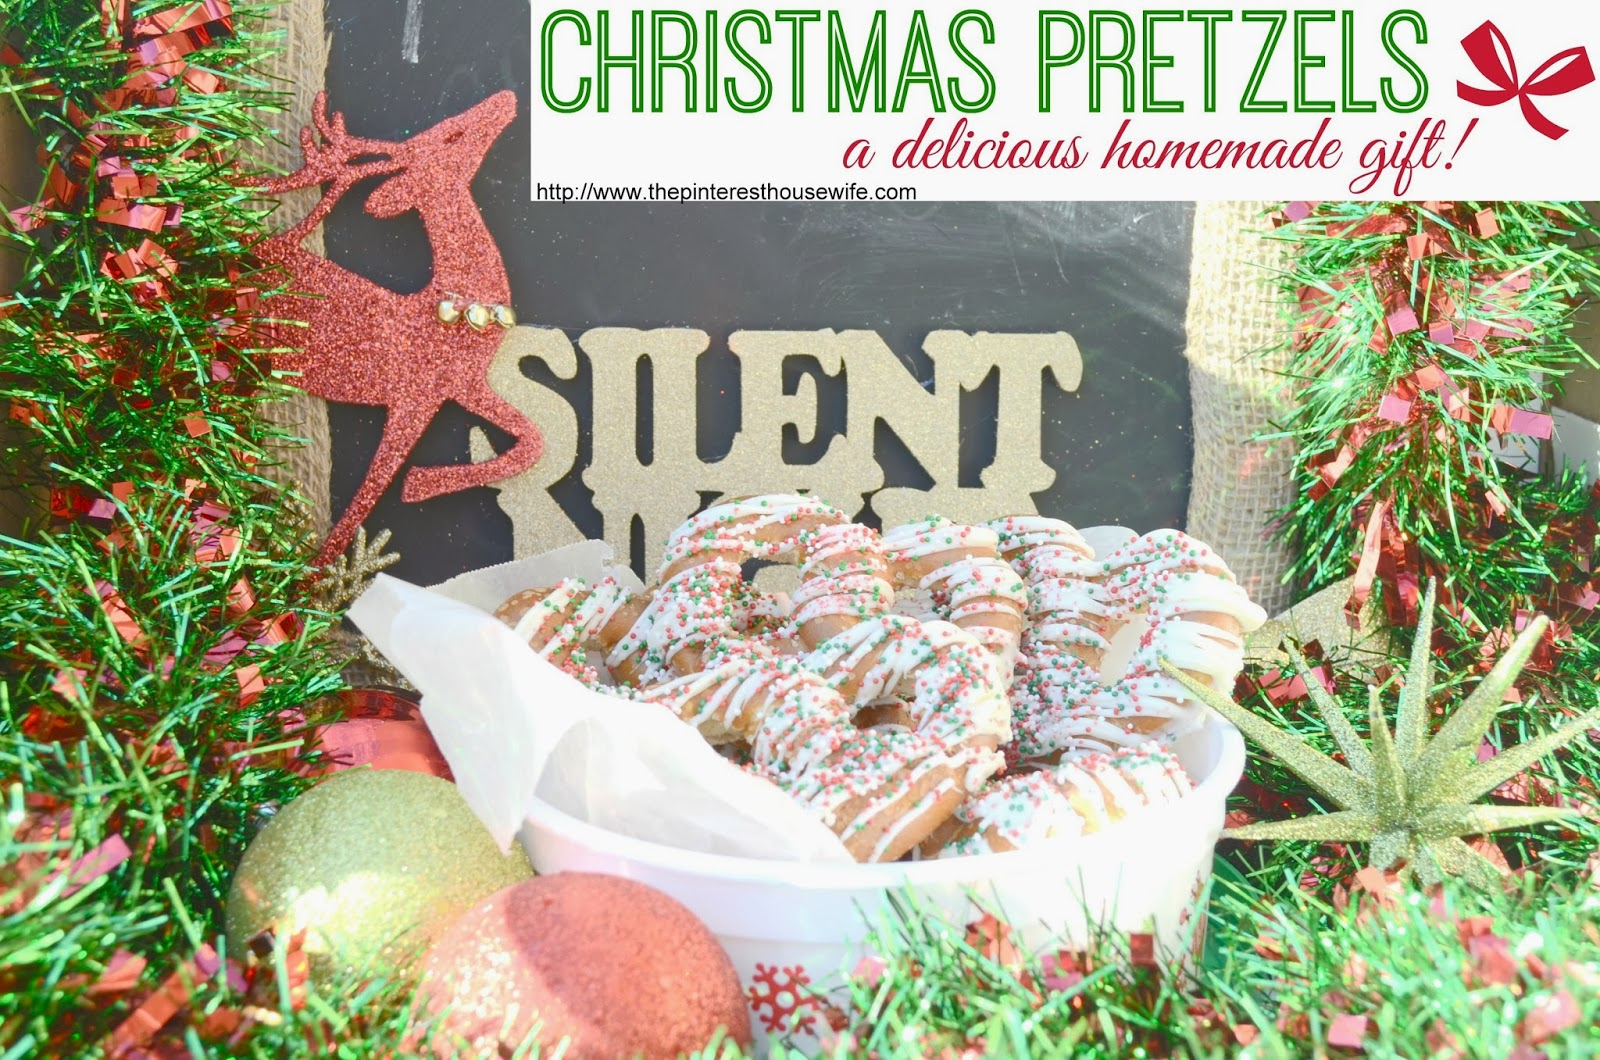 The best way to spread Christmas cheer is to eat sweets this time of ...